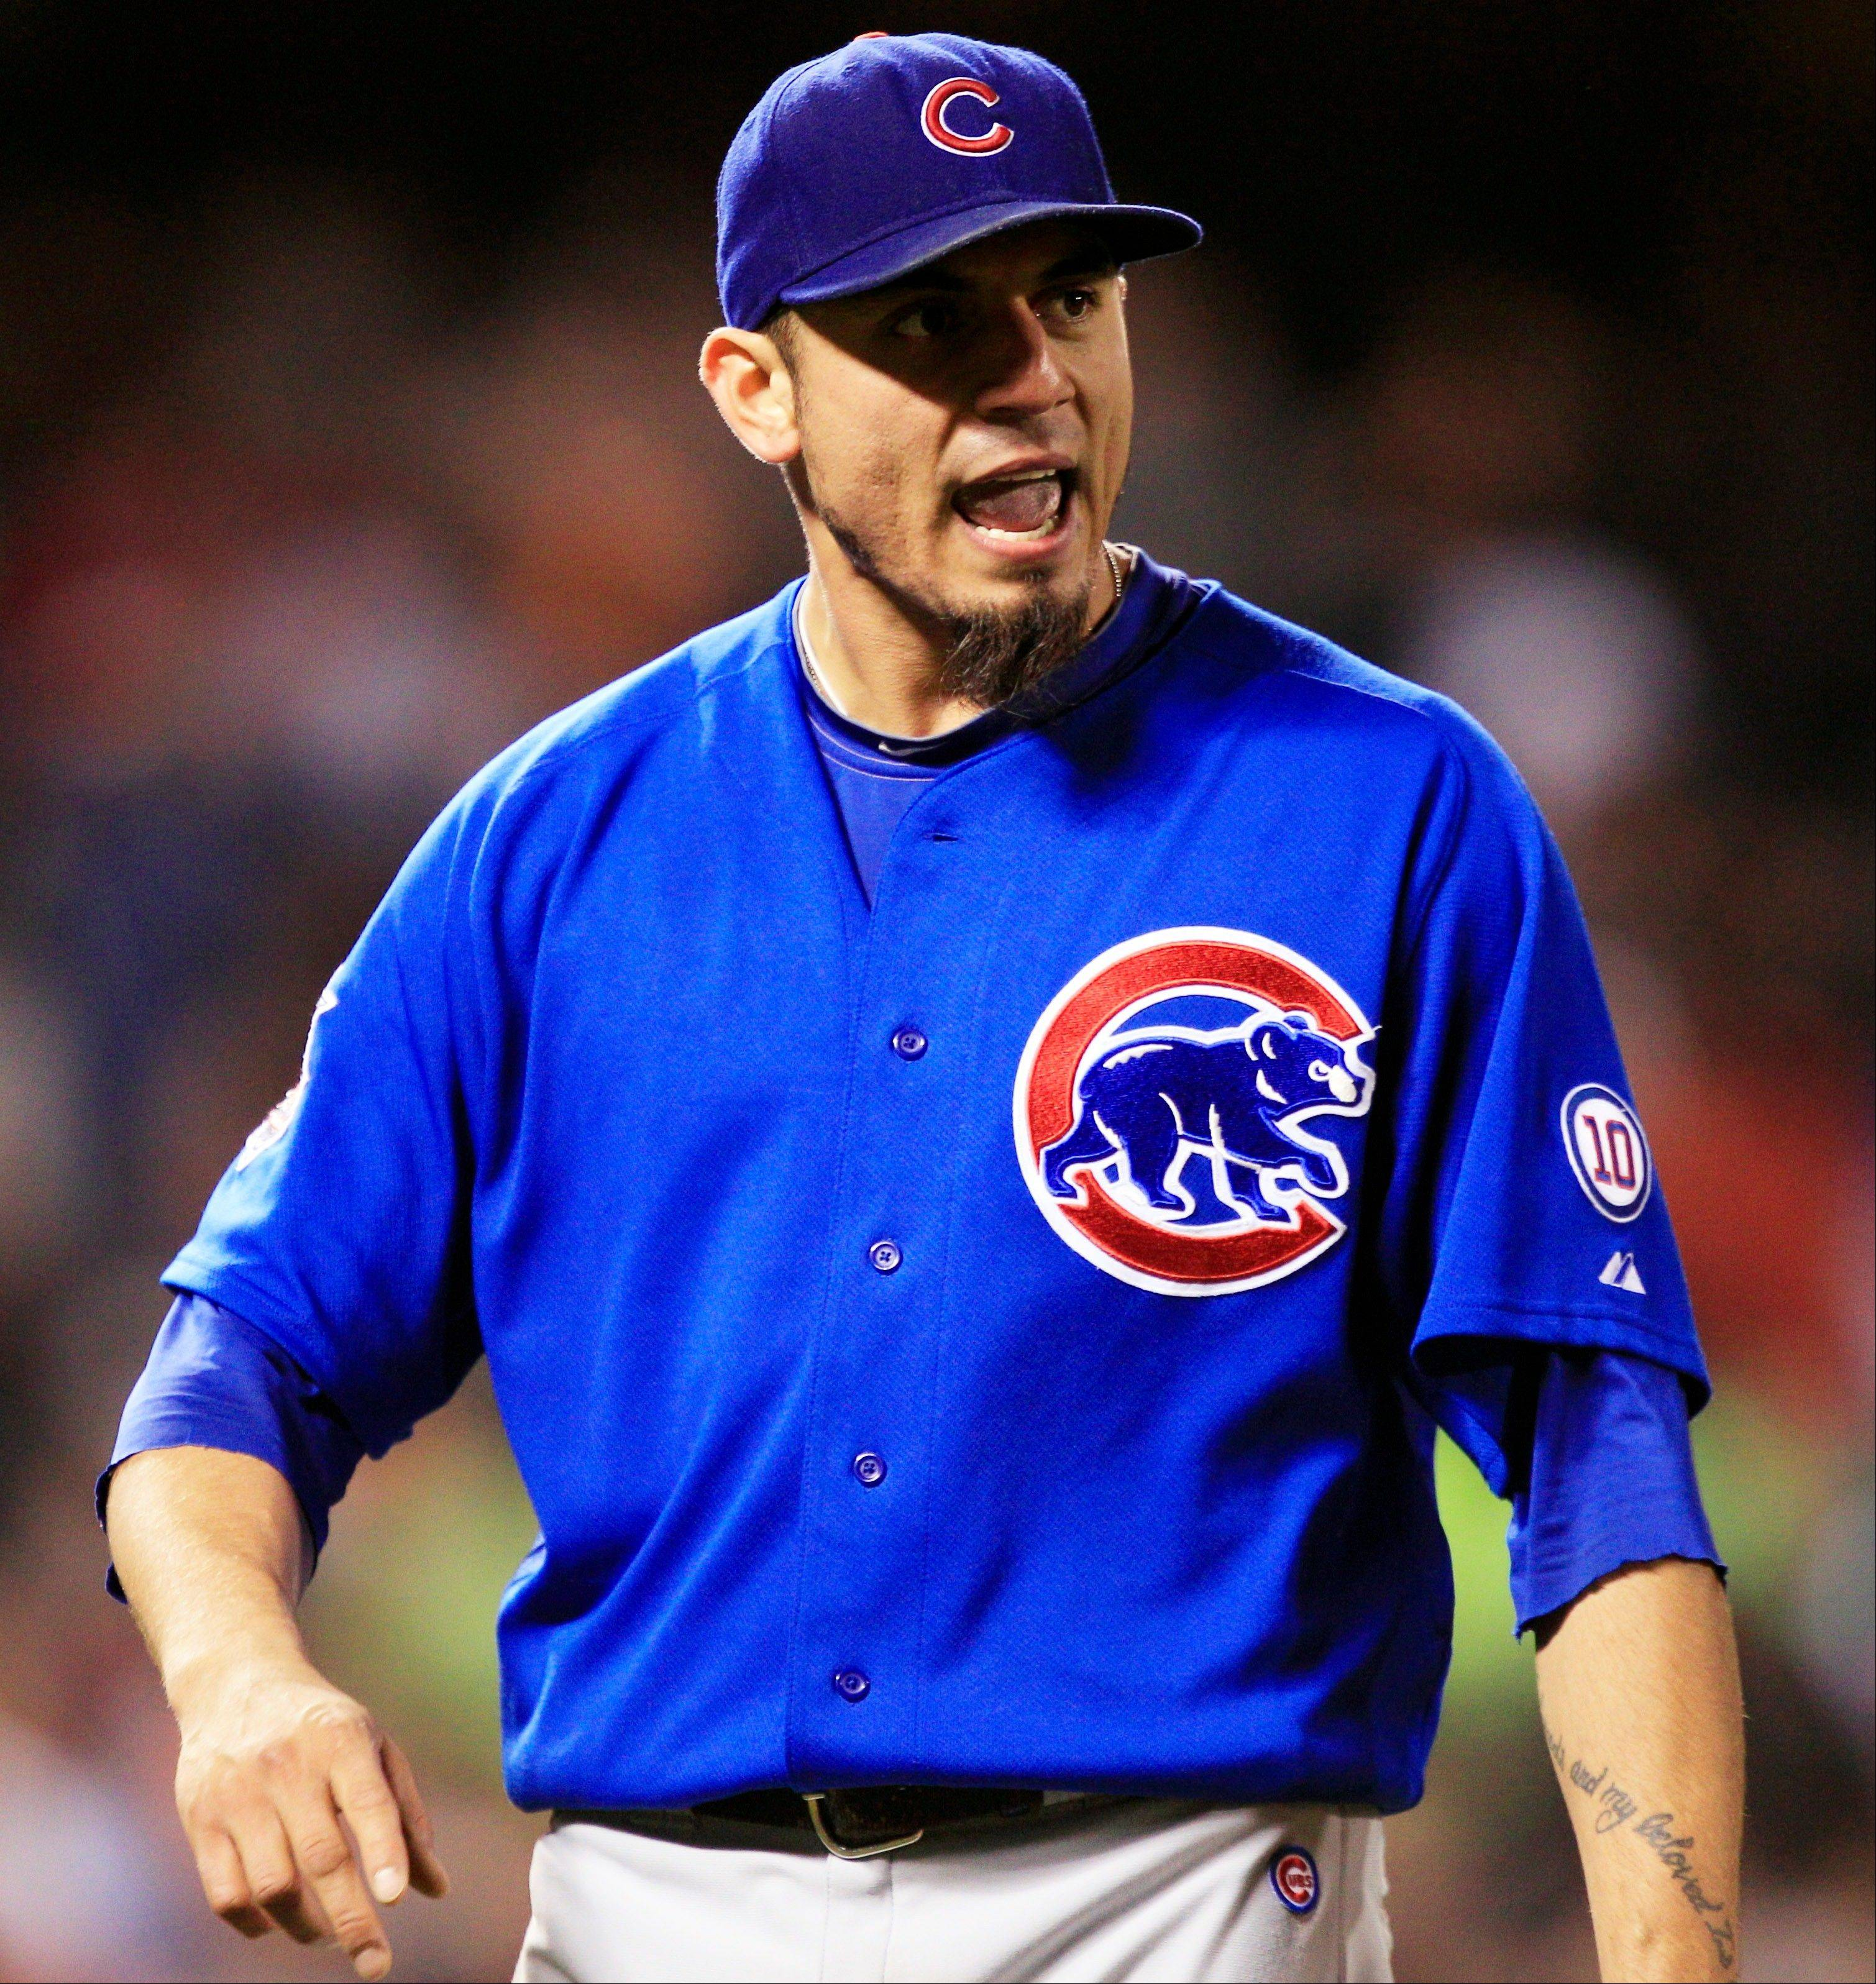 Cubs starting pitcher Matt Garza is the ace of the staff, but several pitchers are coming off injuries and the Cubs make try to find more depth at the winter meetings.